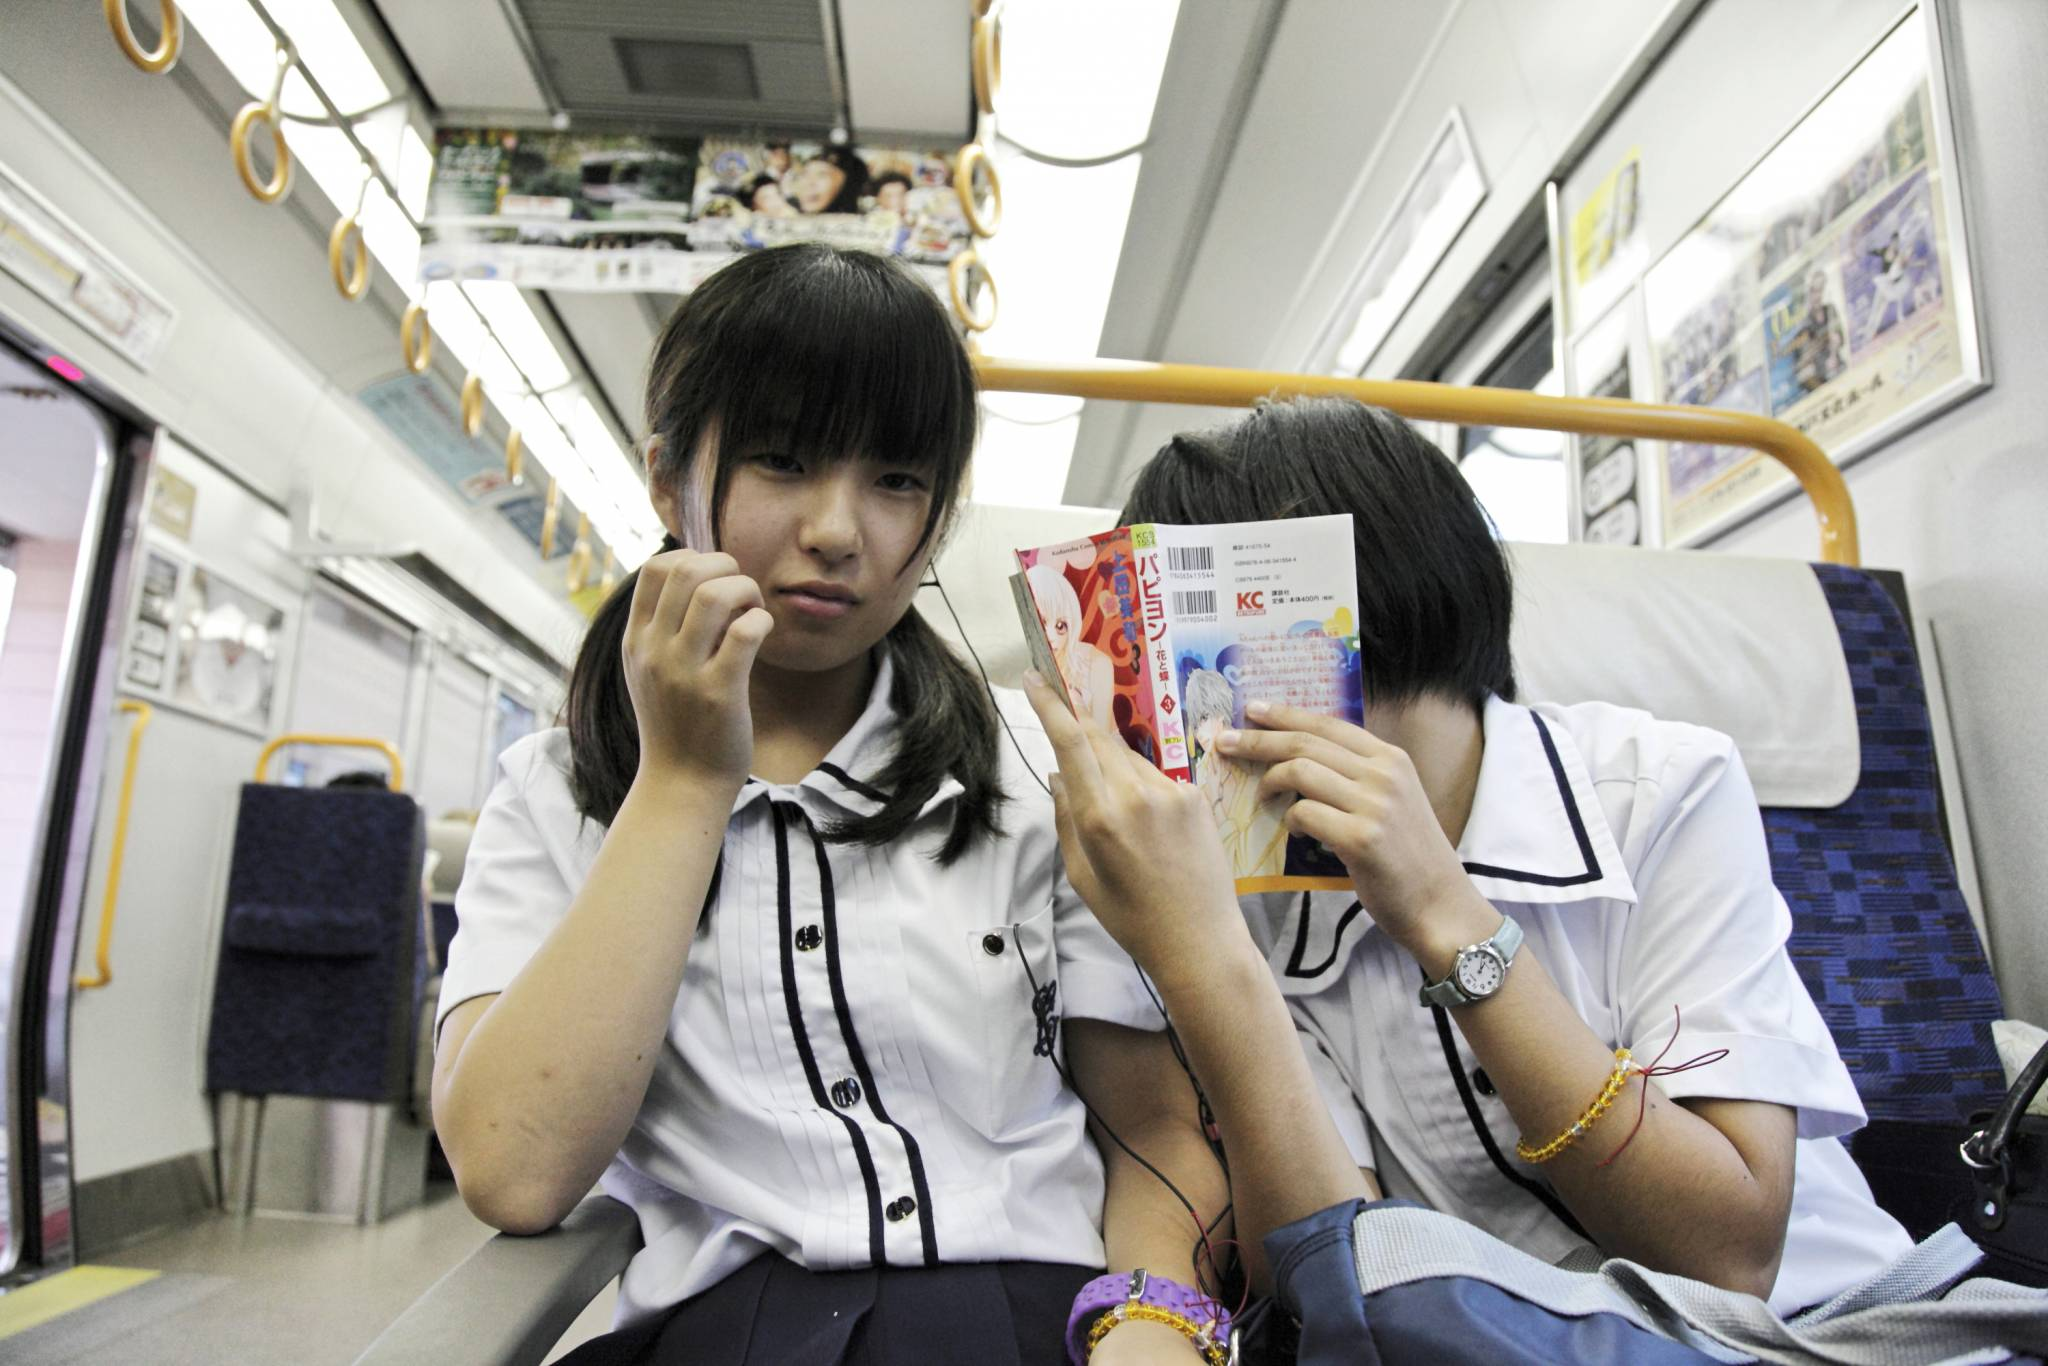 travel photo japanese school girls reading kc book